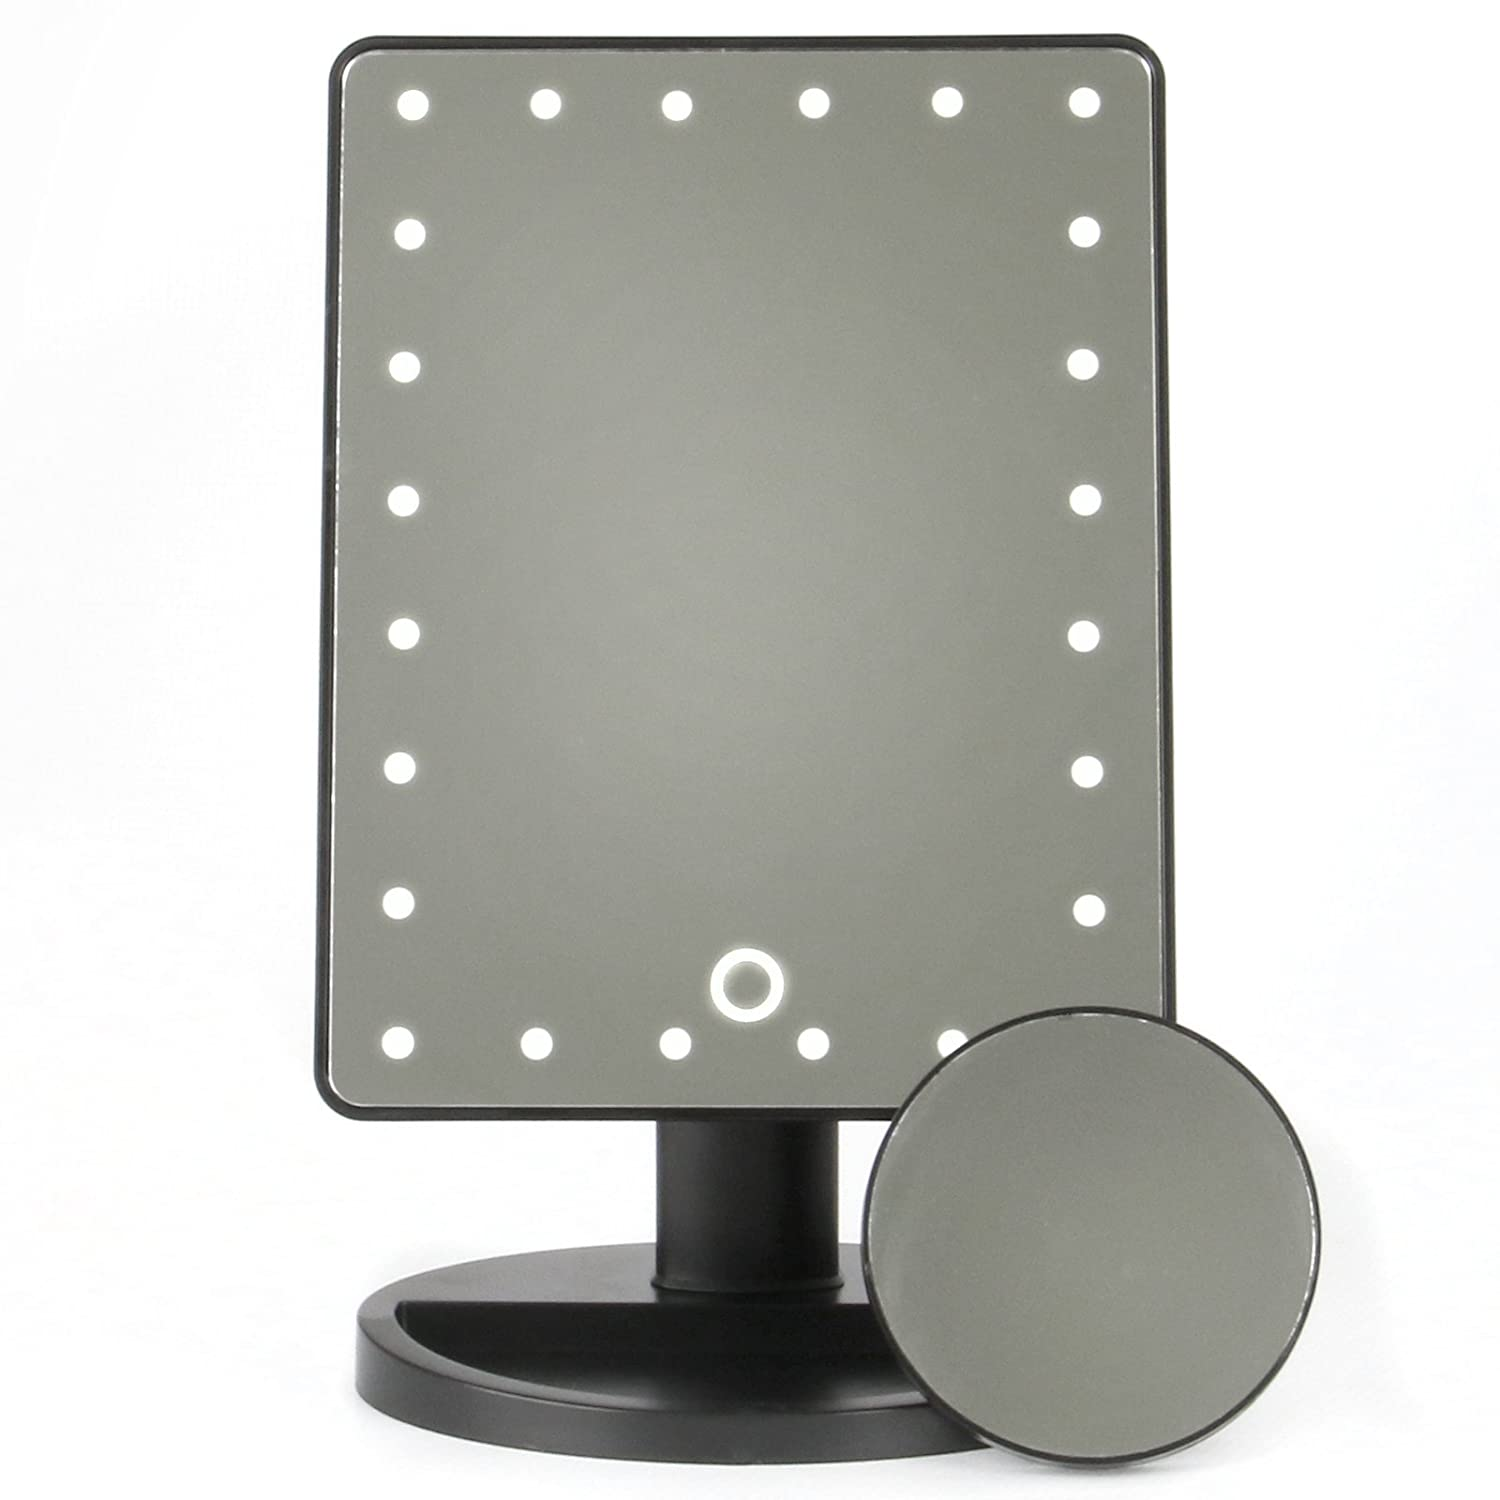 M/&W Black New LED Light Up Illuminated Make Up Bathroom Mirror With Magnifier